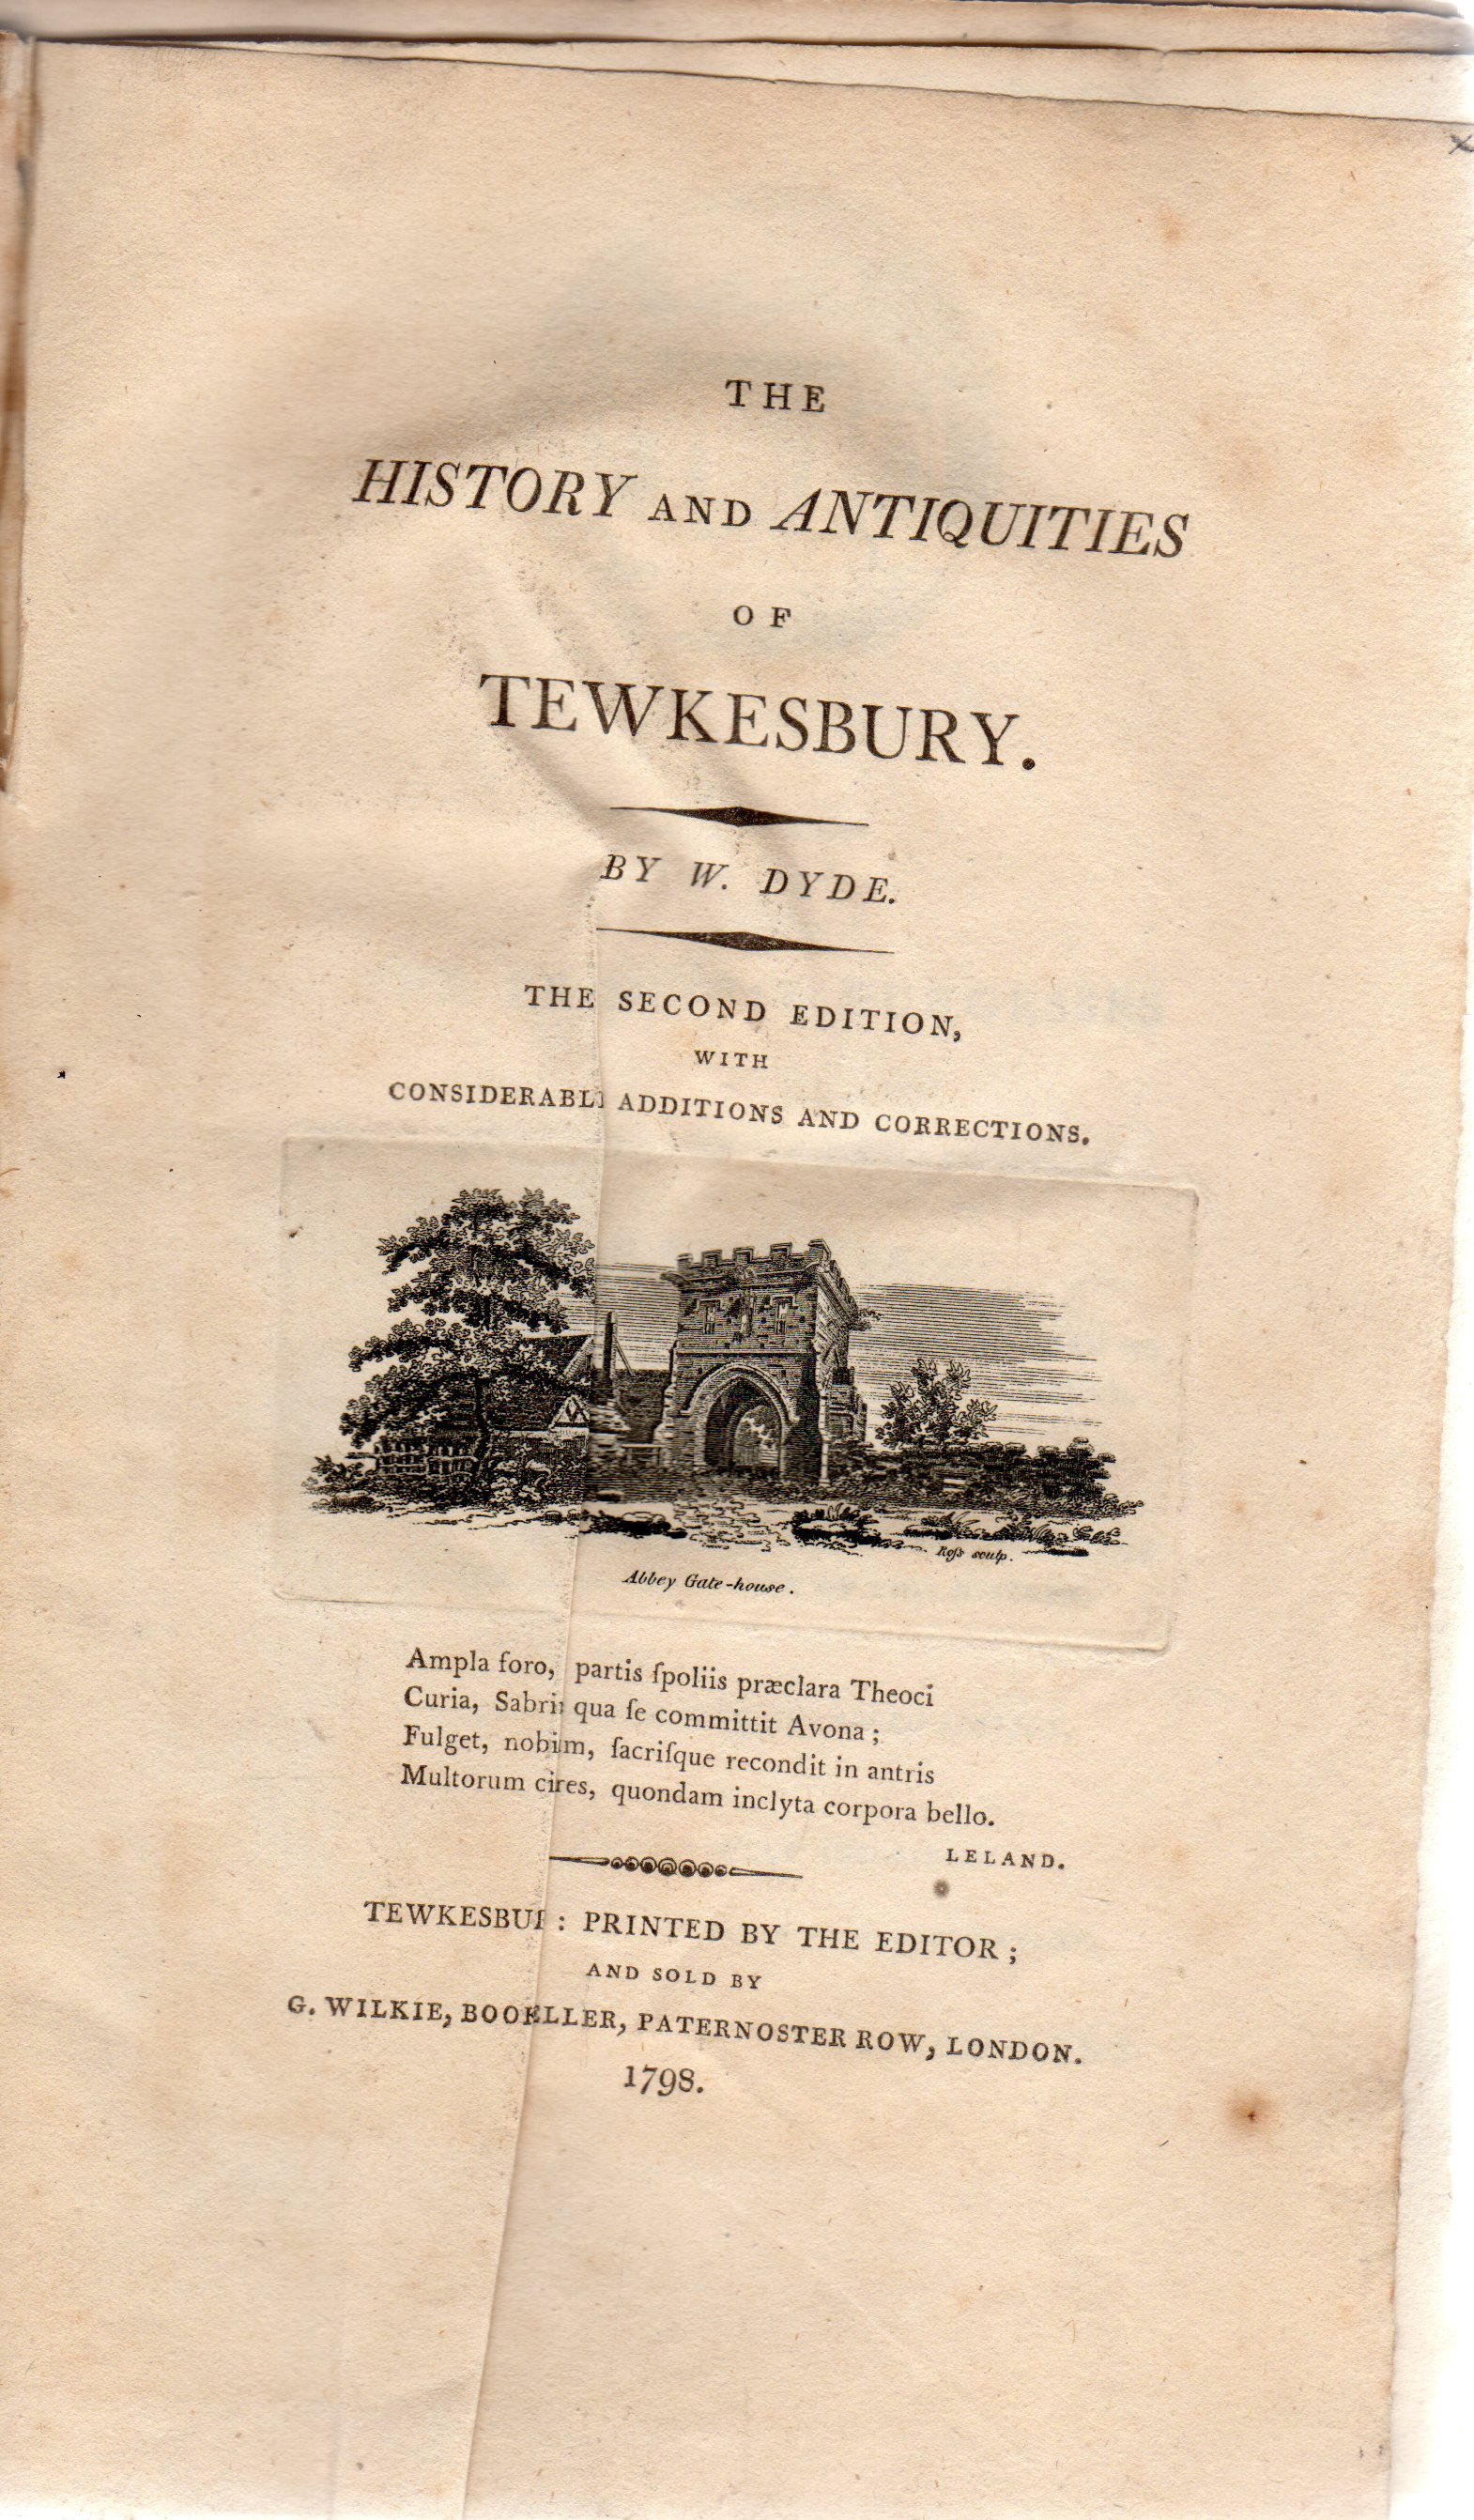 Image for The history and antiquities of Tewkesbury. The second edition (REBINDING COPY ONLY)